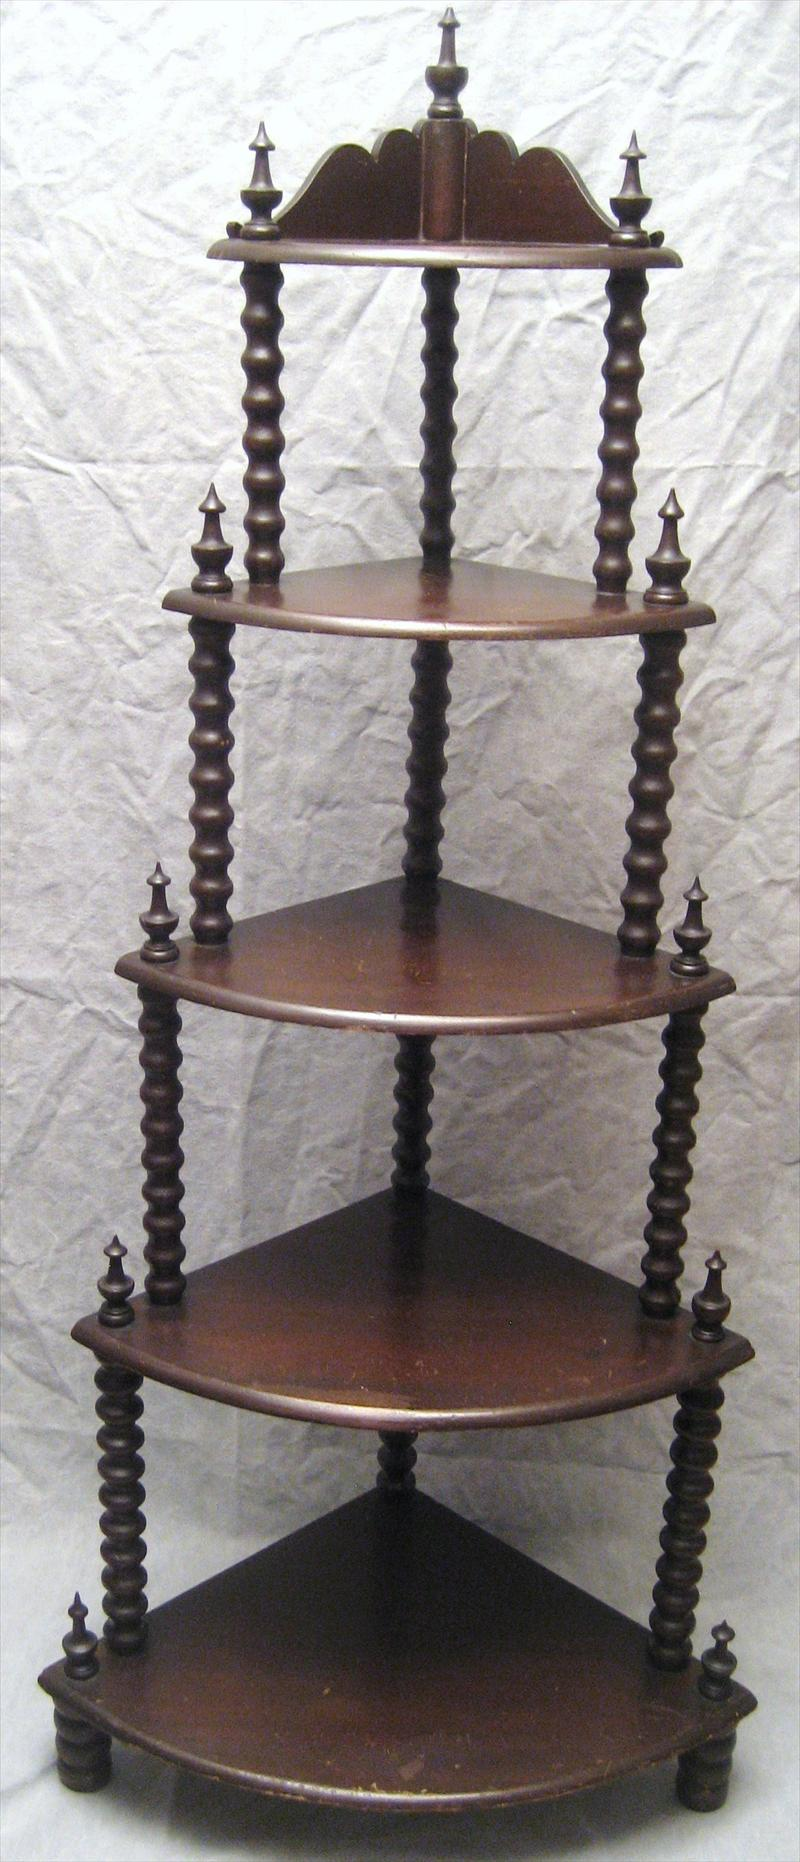 Used Furniture Melbourne Fl ... By Juliens Auctions in addition Index. on furniture auctions mn